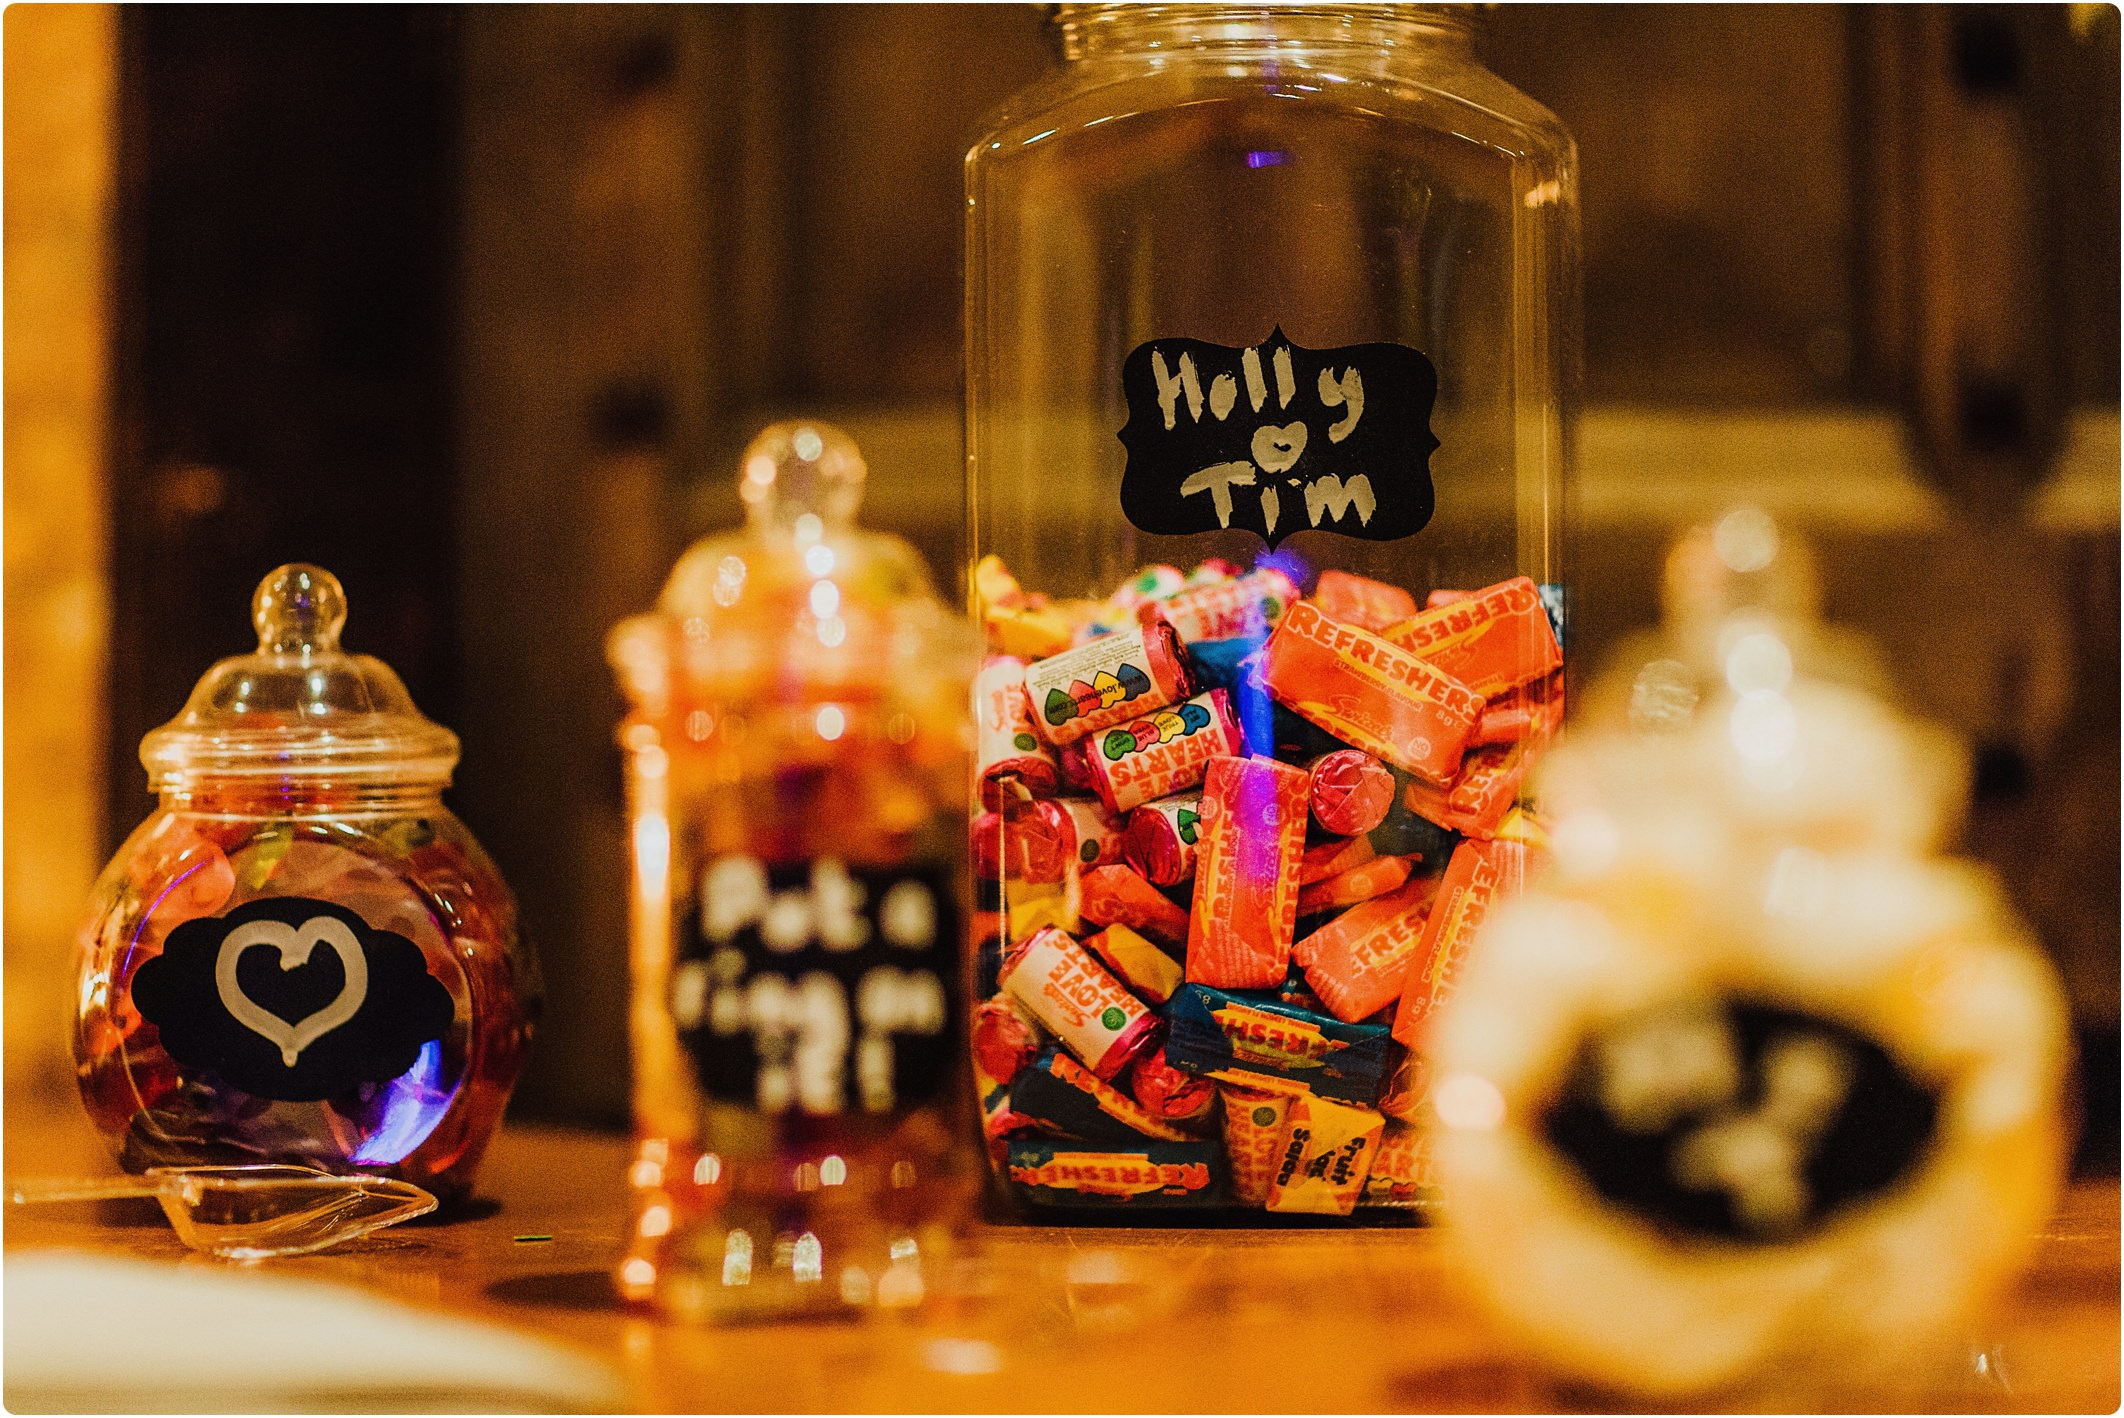 sweet wedding jar idea